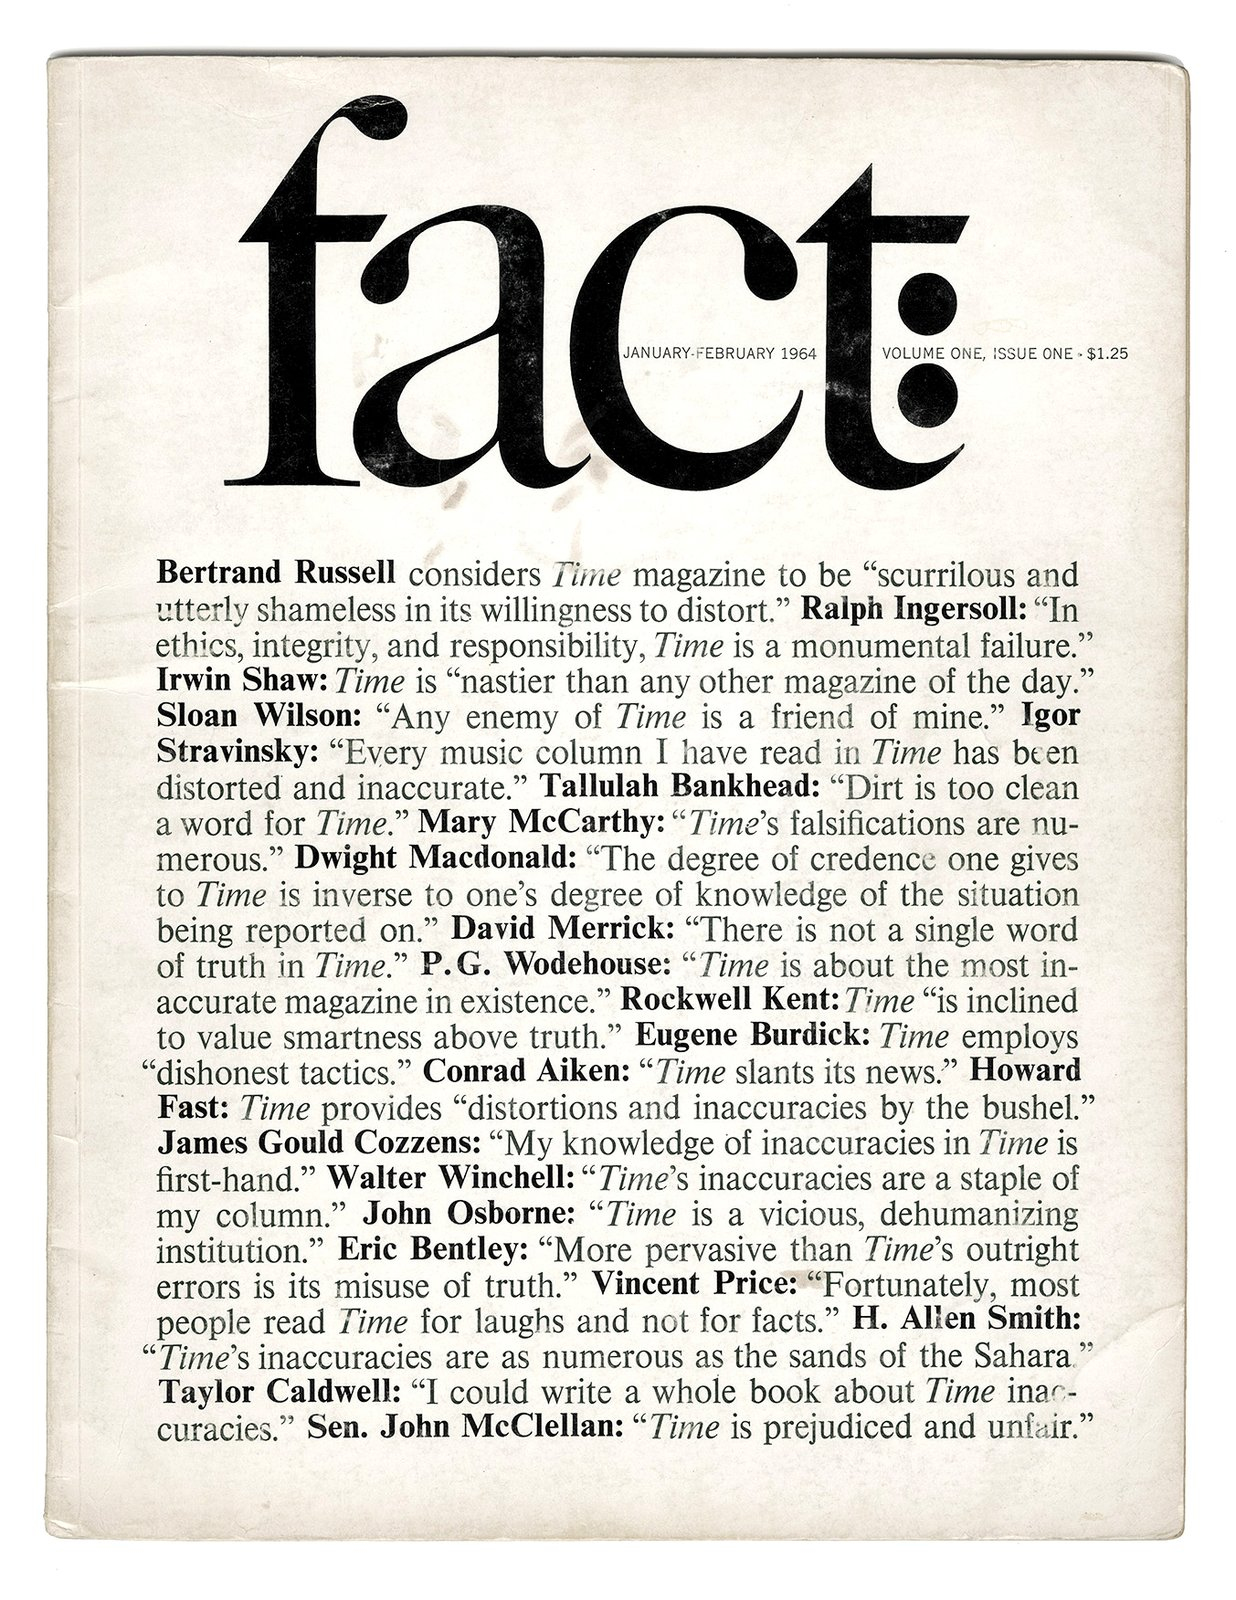 The inaugural issue of Fact launched by Ralph Ginsburg and Herb Lubalin in January 1964. A typical example of a Fact cover - they were stark, black and white, and mostly typographic.Lubalin introduced many subtle flourishes and as always, the kerning, leading and line breaks are handled with consummate skill.